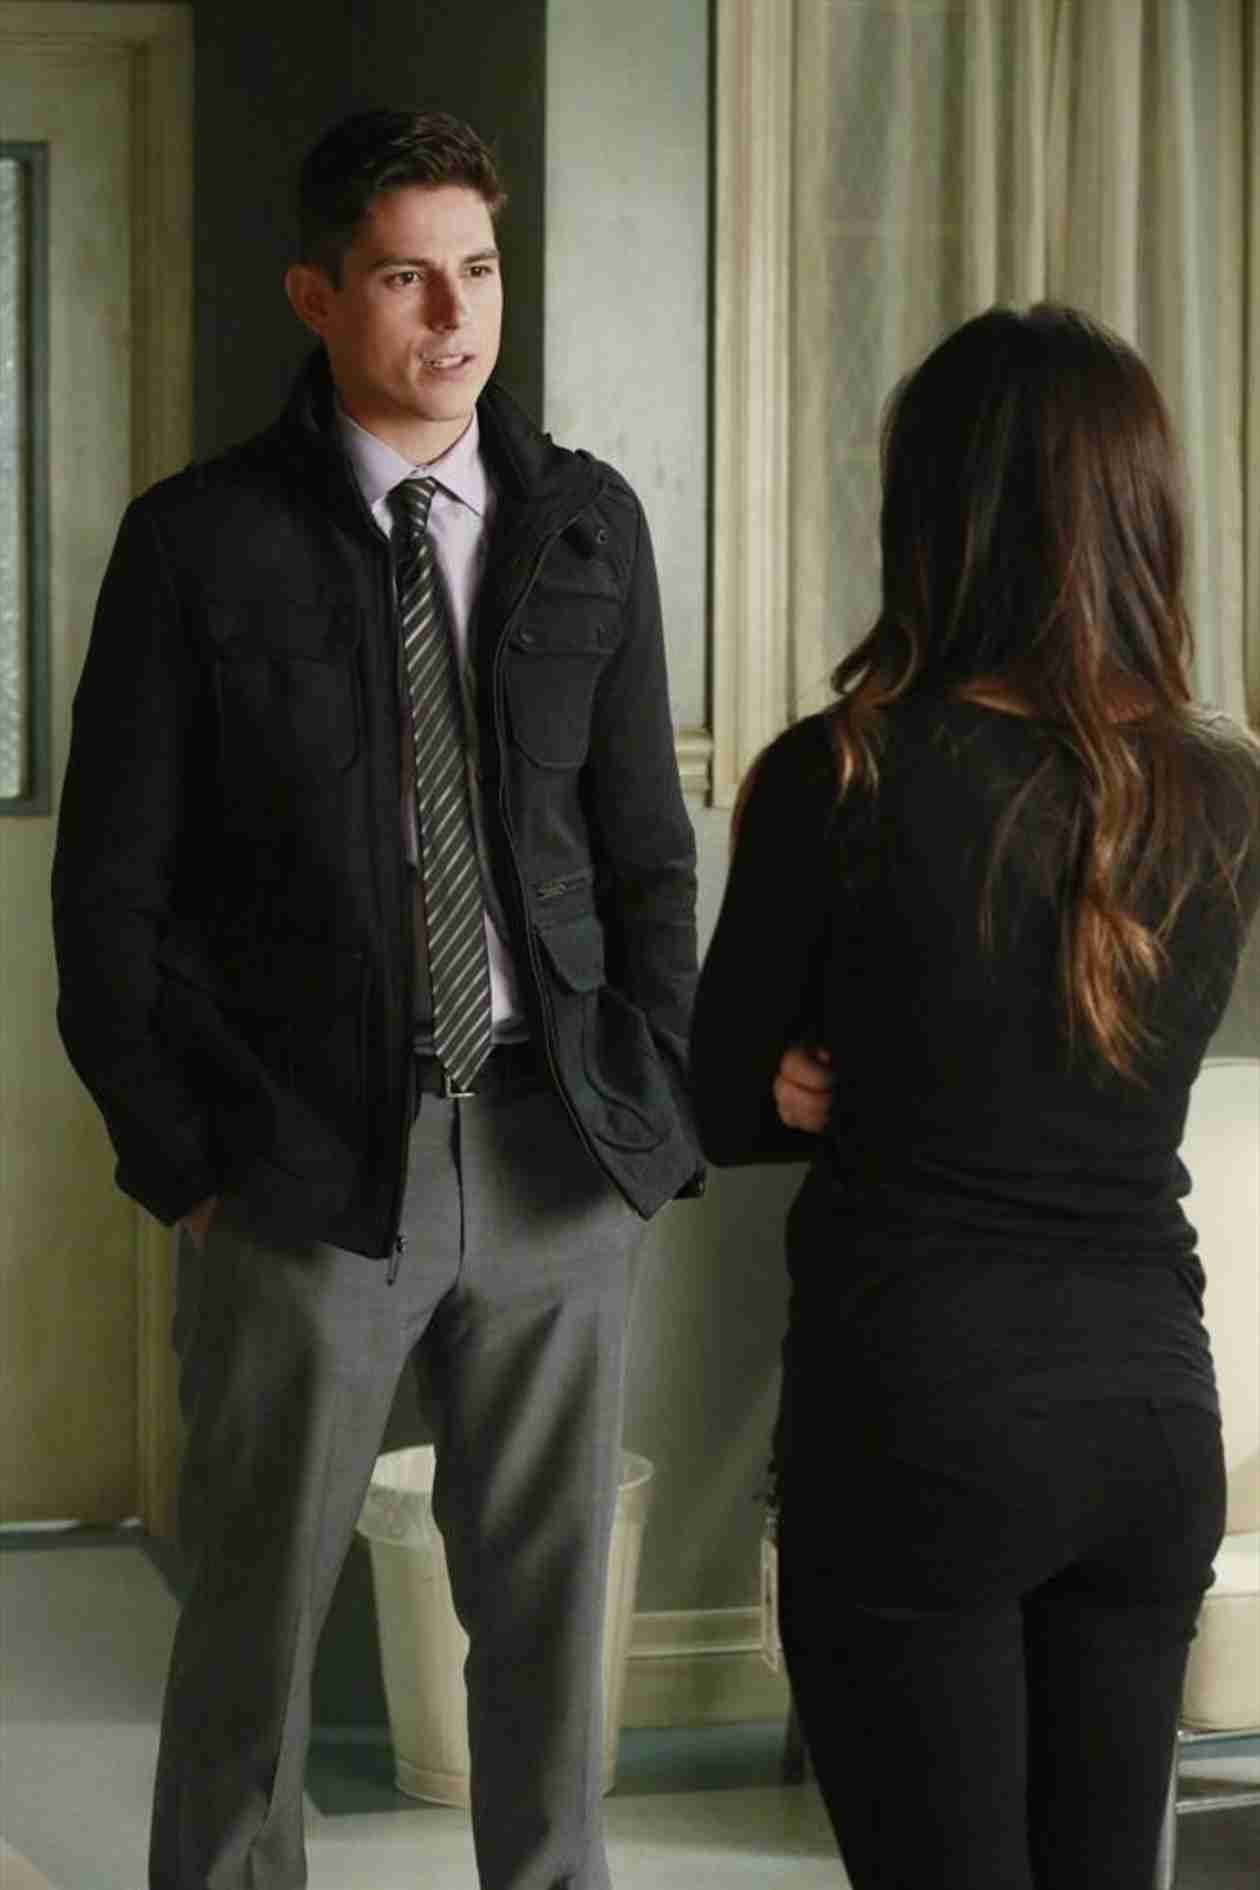 Pretty Little Liars Burning Question: What Did Alison and Holbrook Talk About?